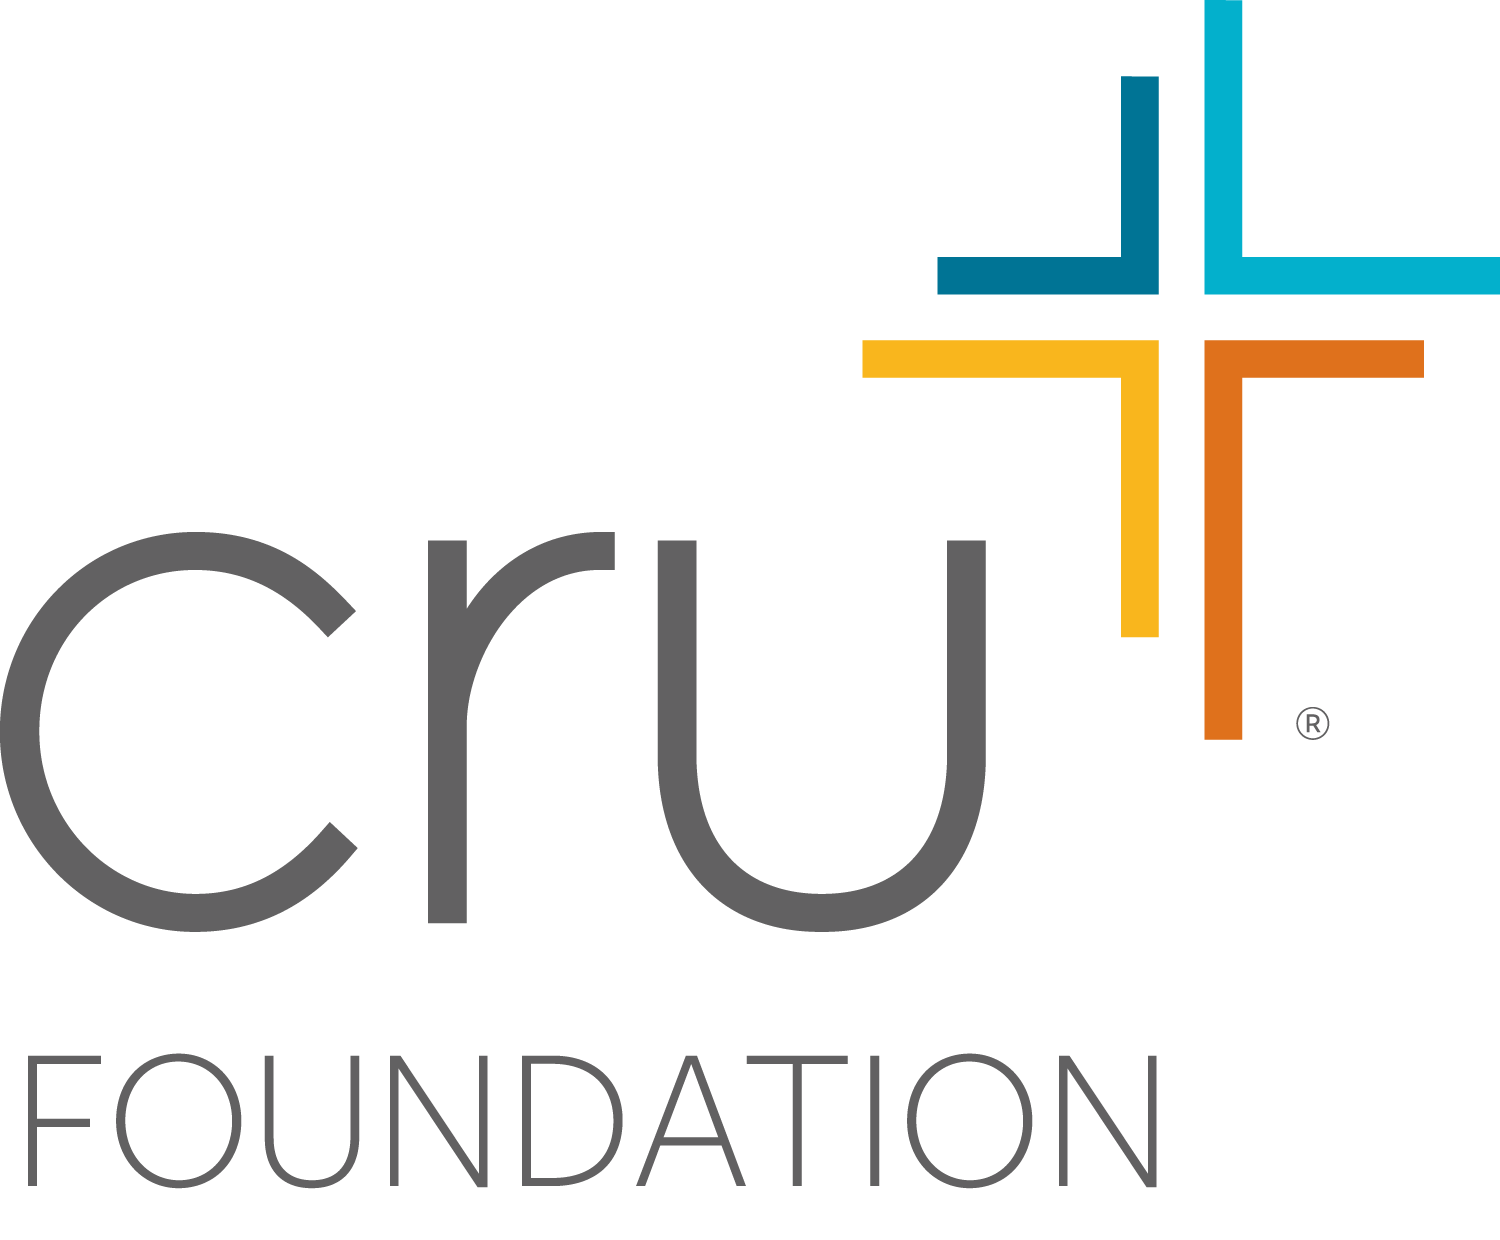 Cru Foundation